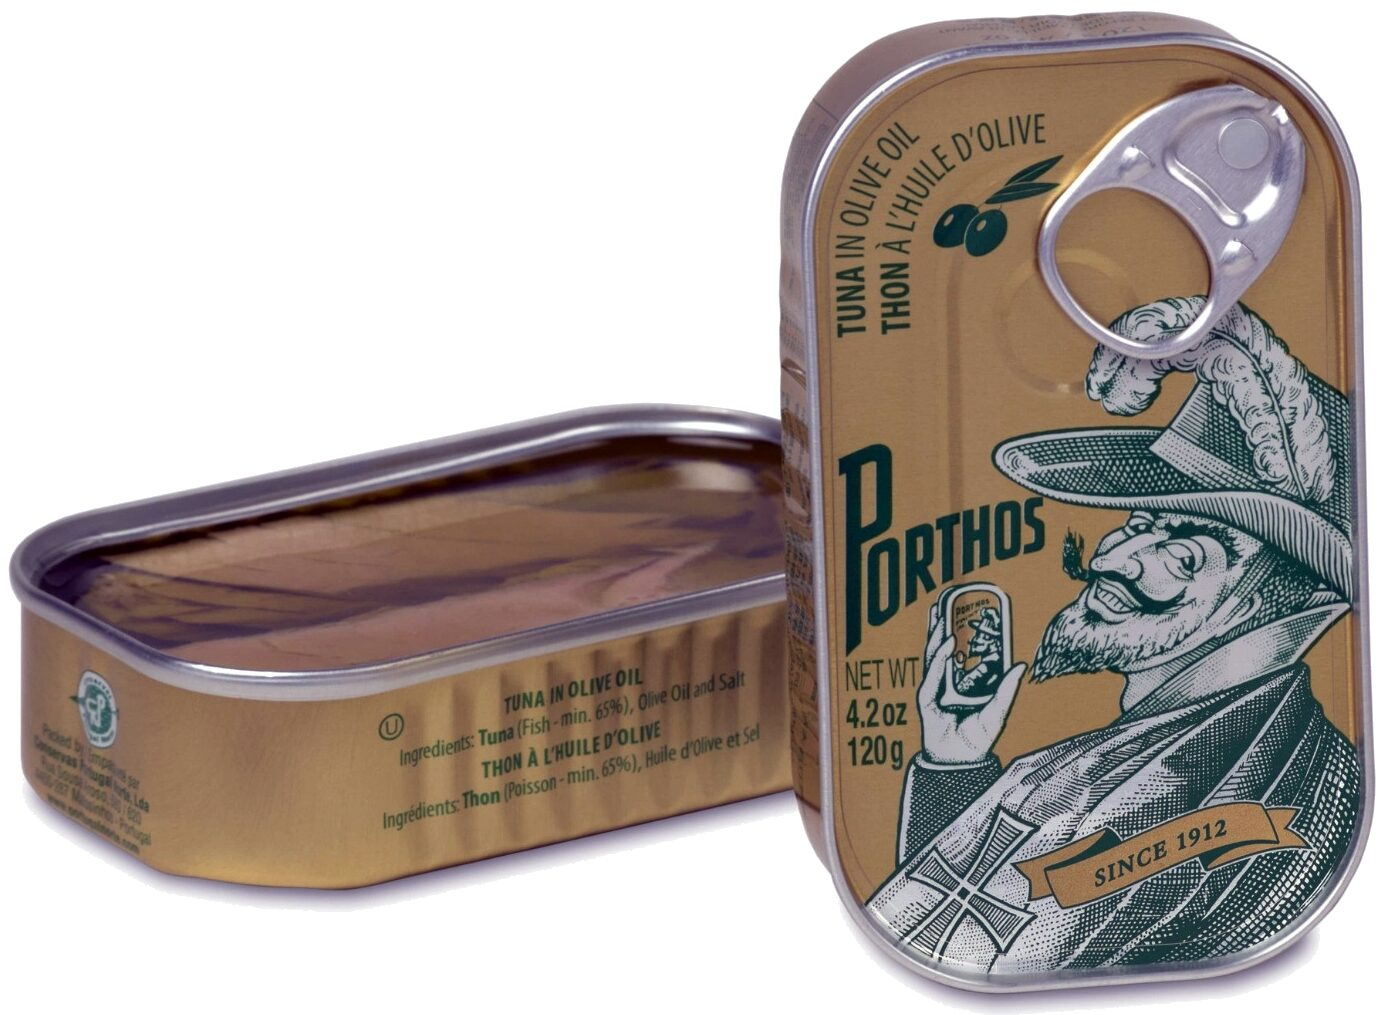 Porthos Tuna in Olive Oil - Product